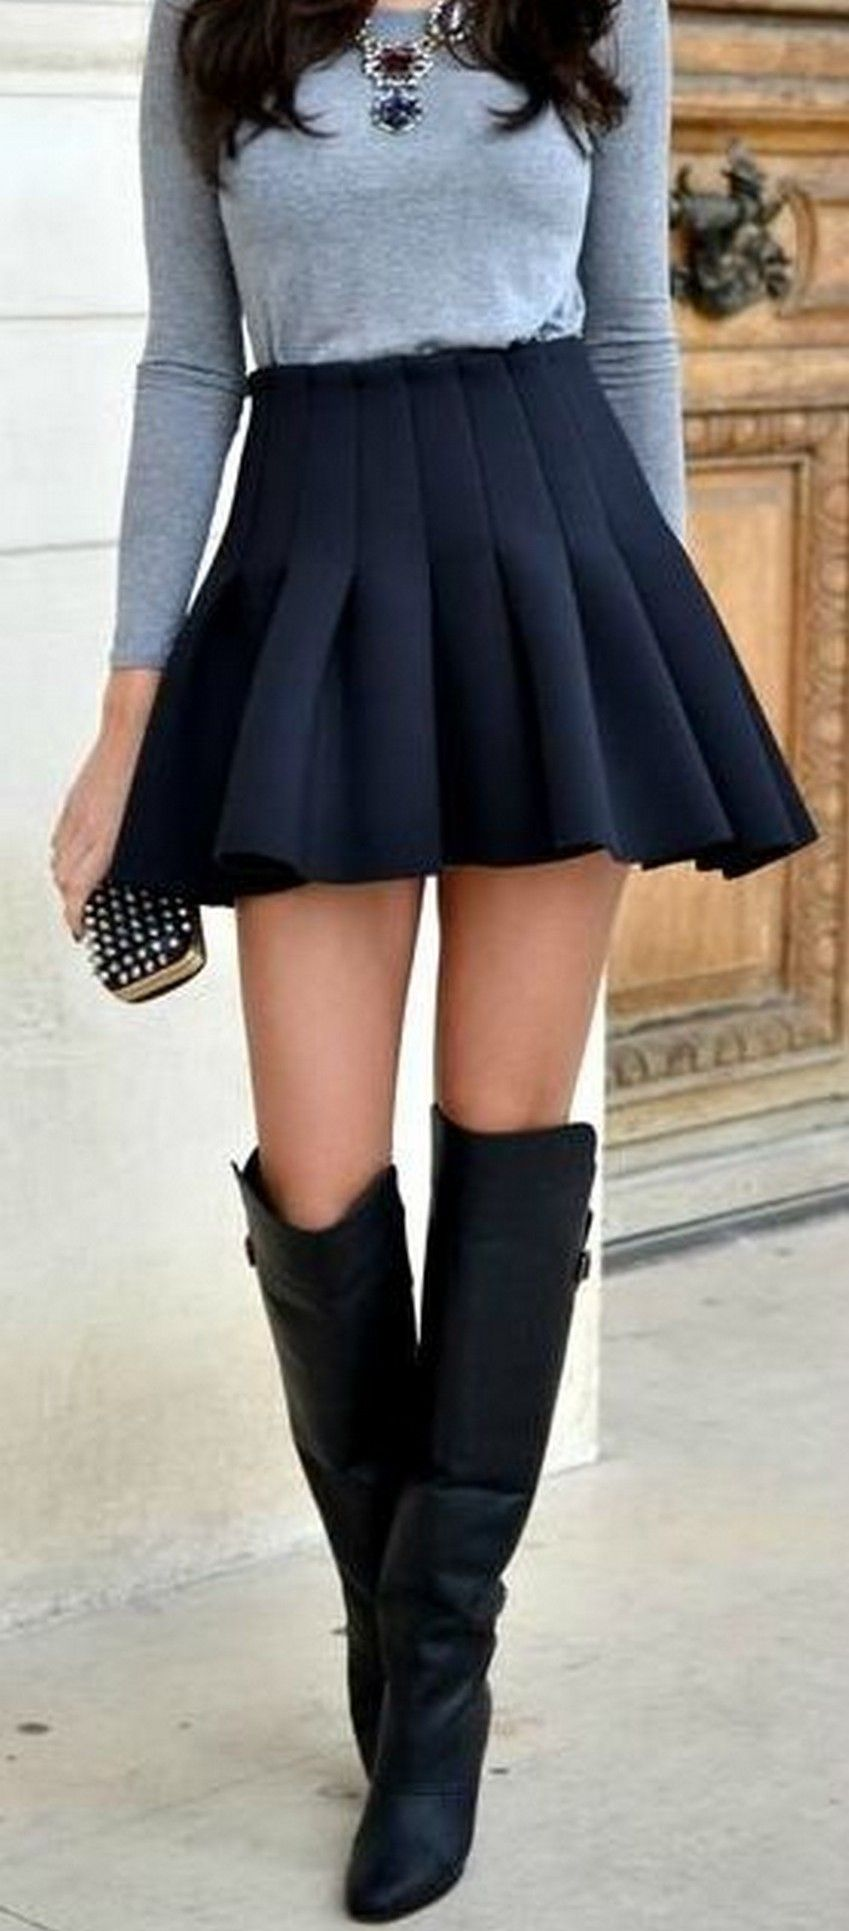 8 pleated skirt how to wear the knee boots